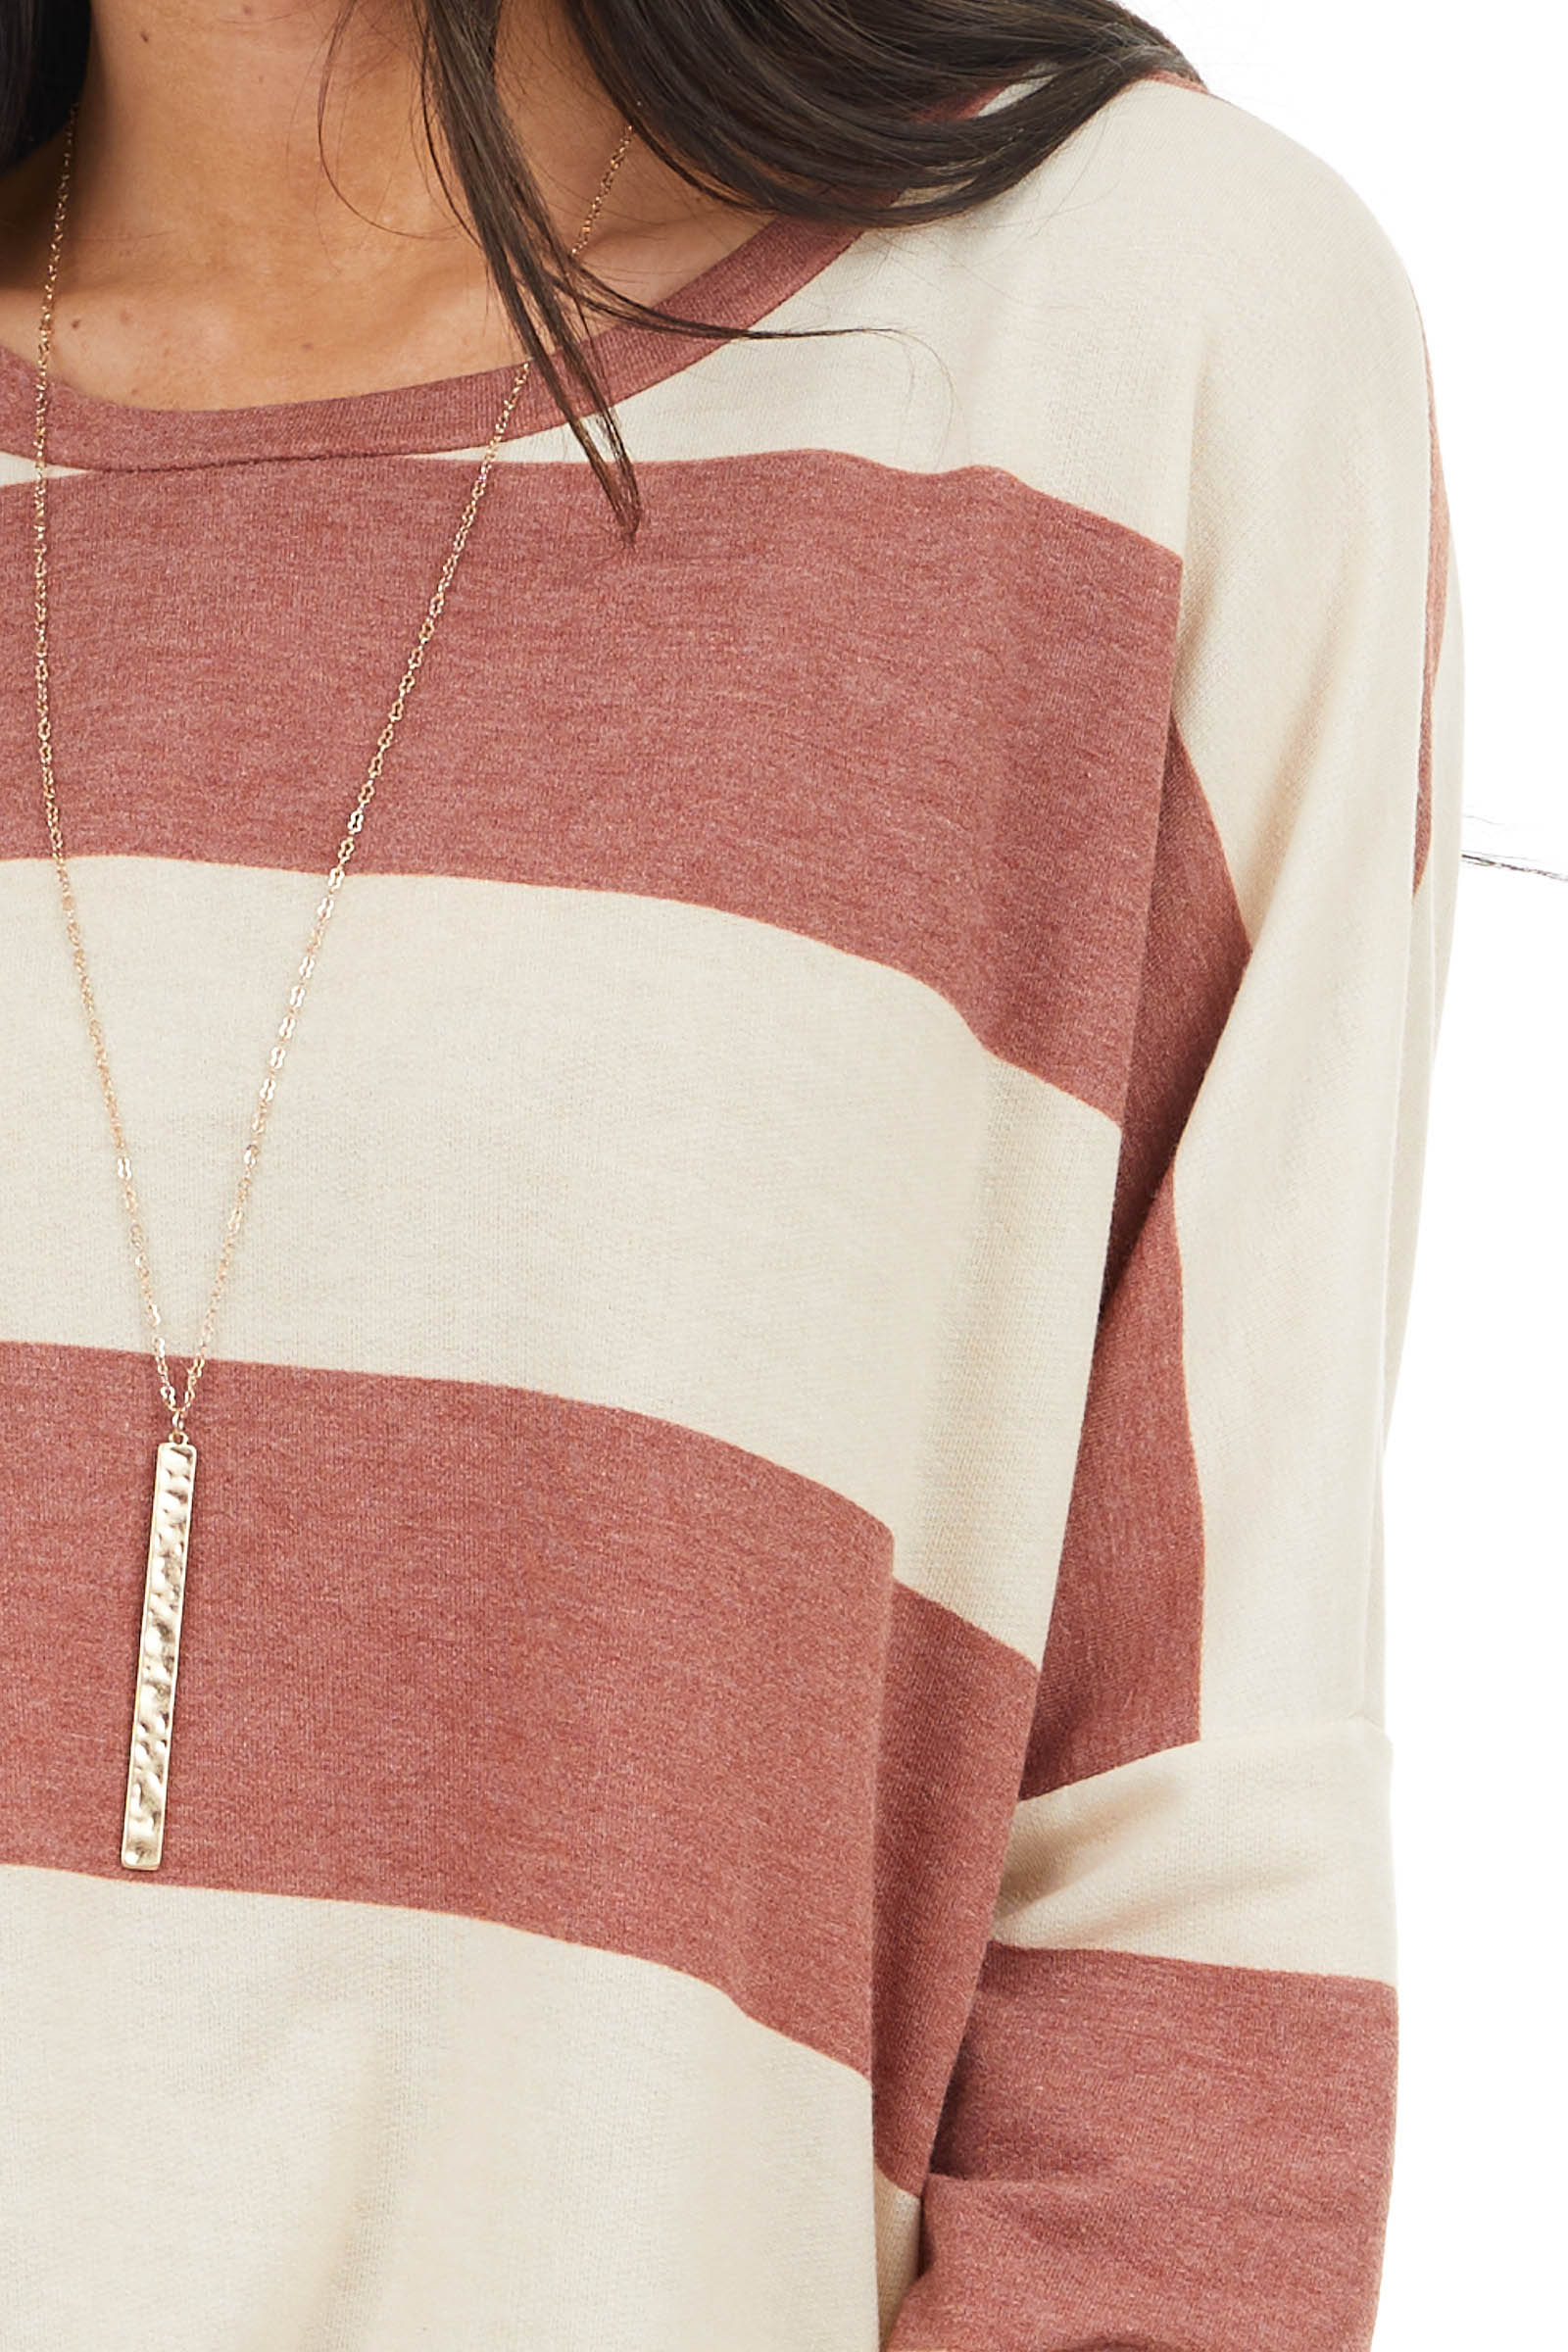 Vintage Rust and Cream Striped Drop Shoulder Long Sleeve Top